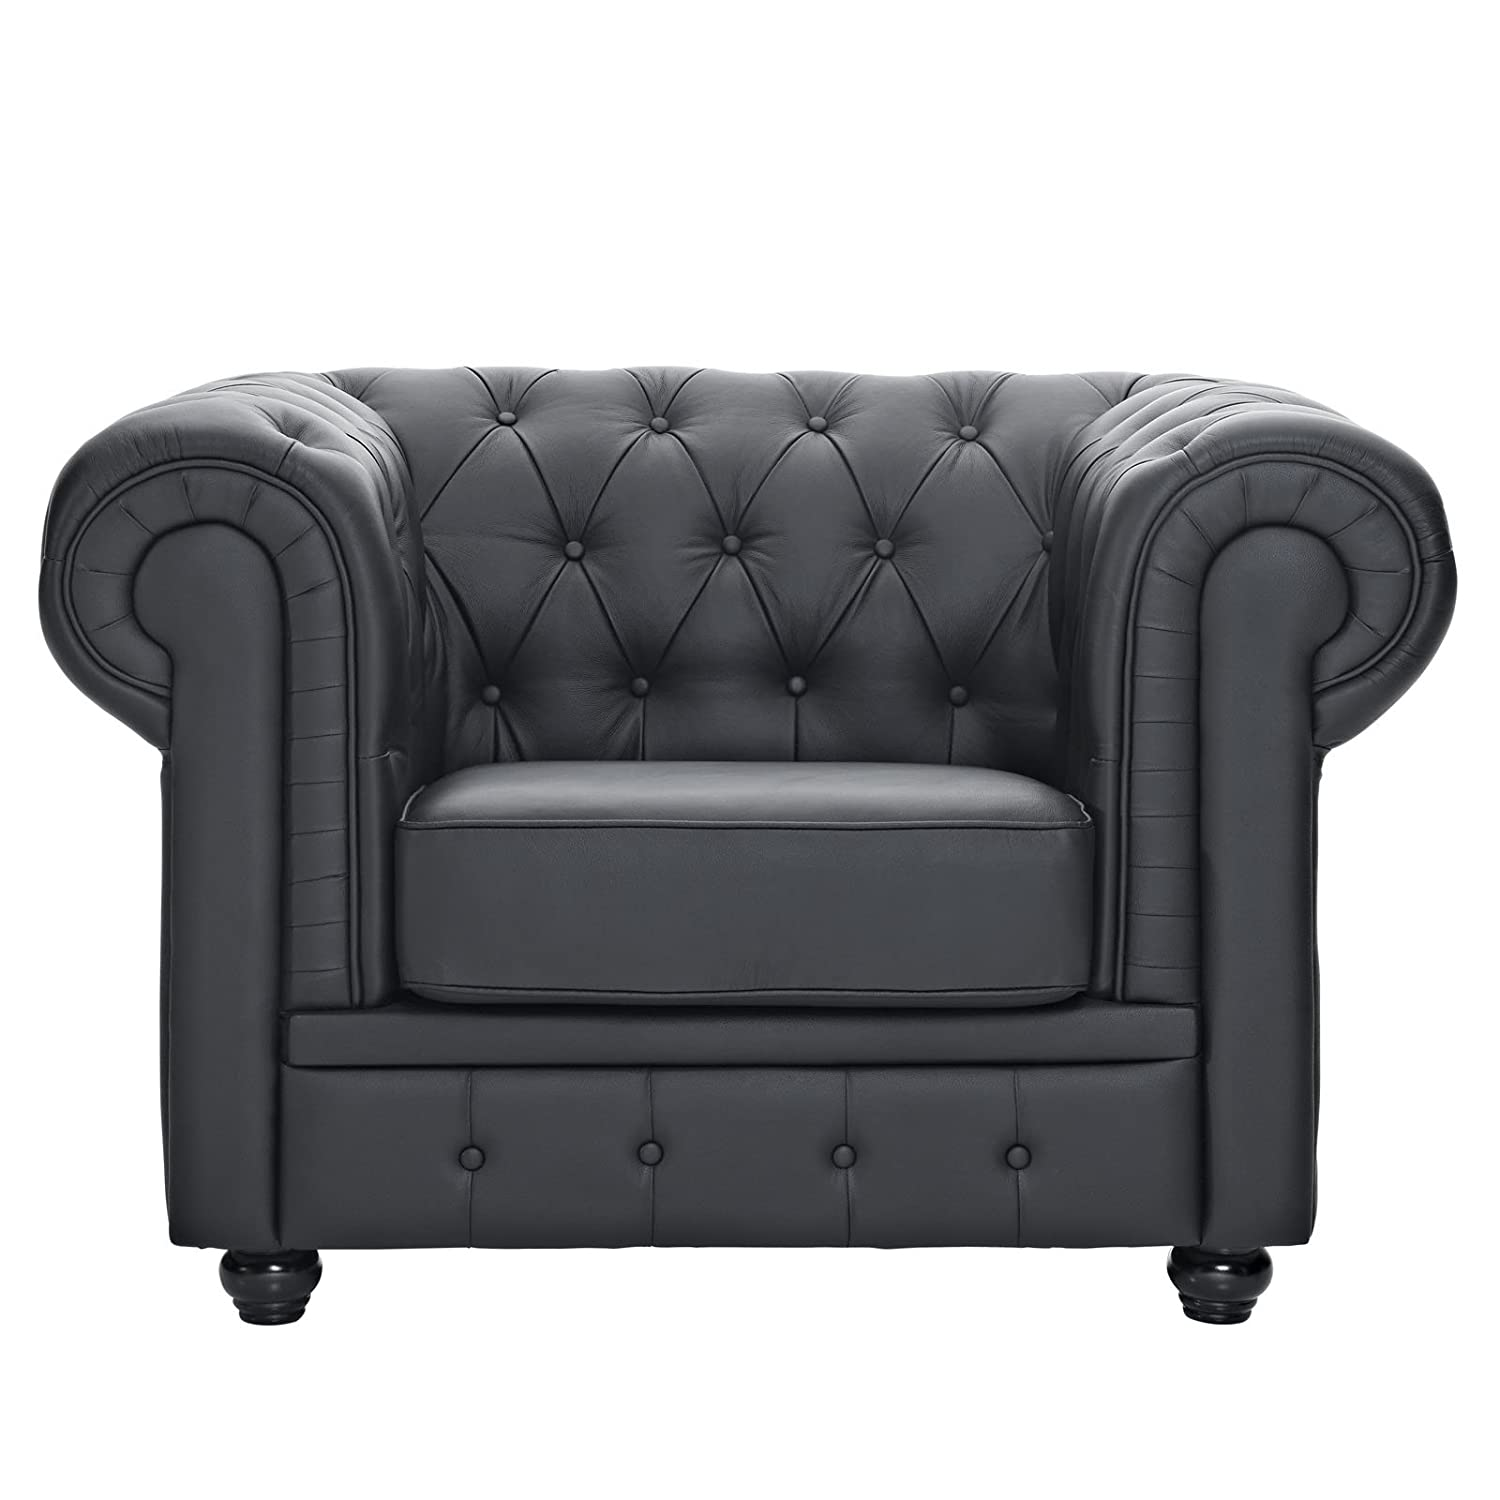 modern contemporary velour sofa grey chesterfield img style earl classic chair kardiel